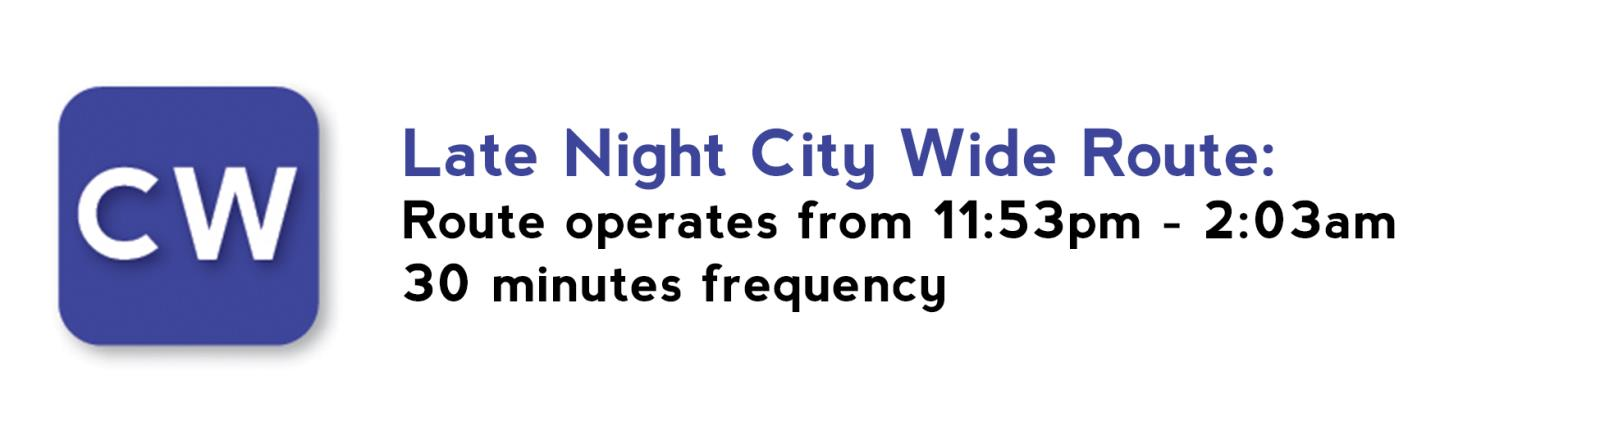 route late night cw